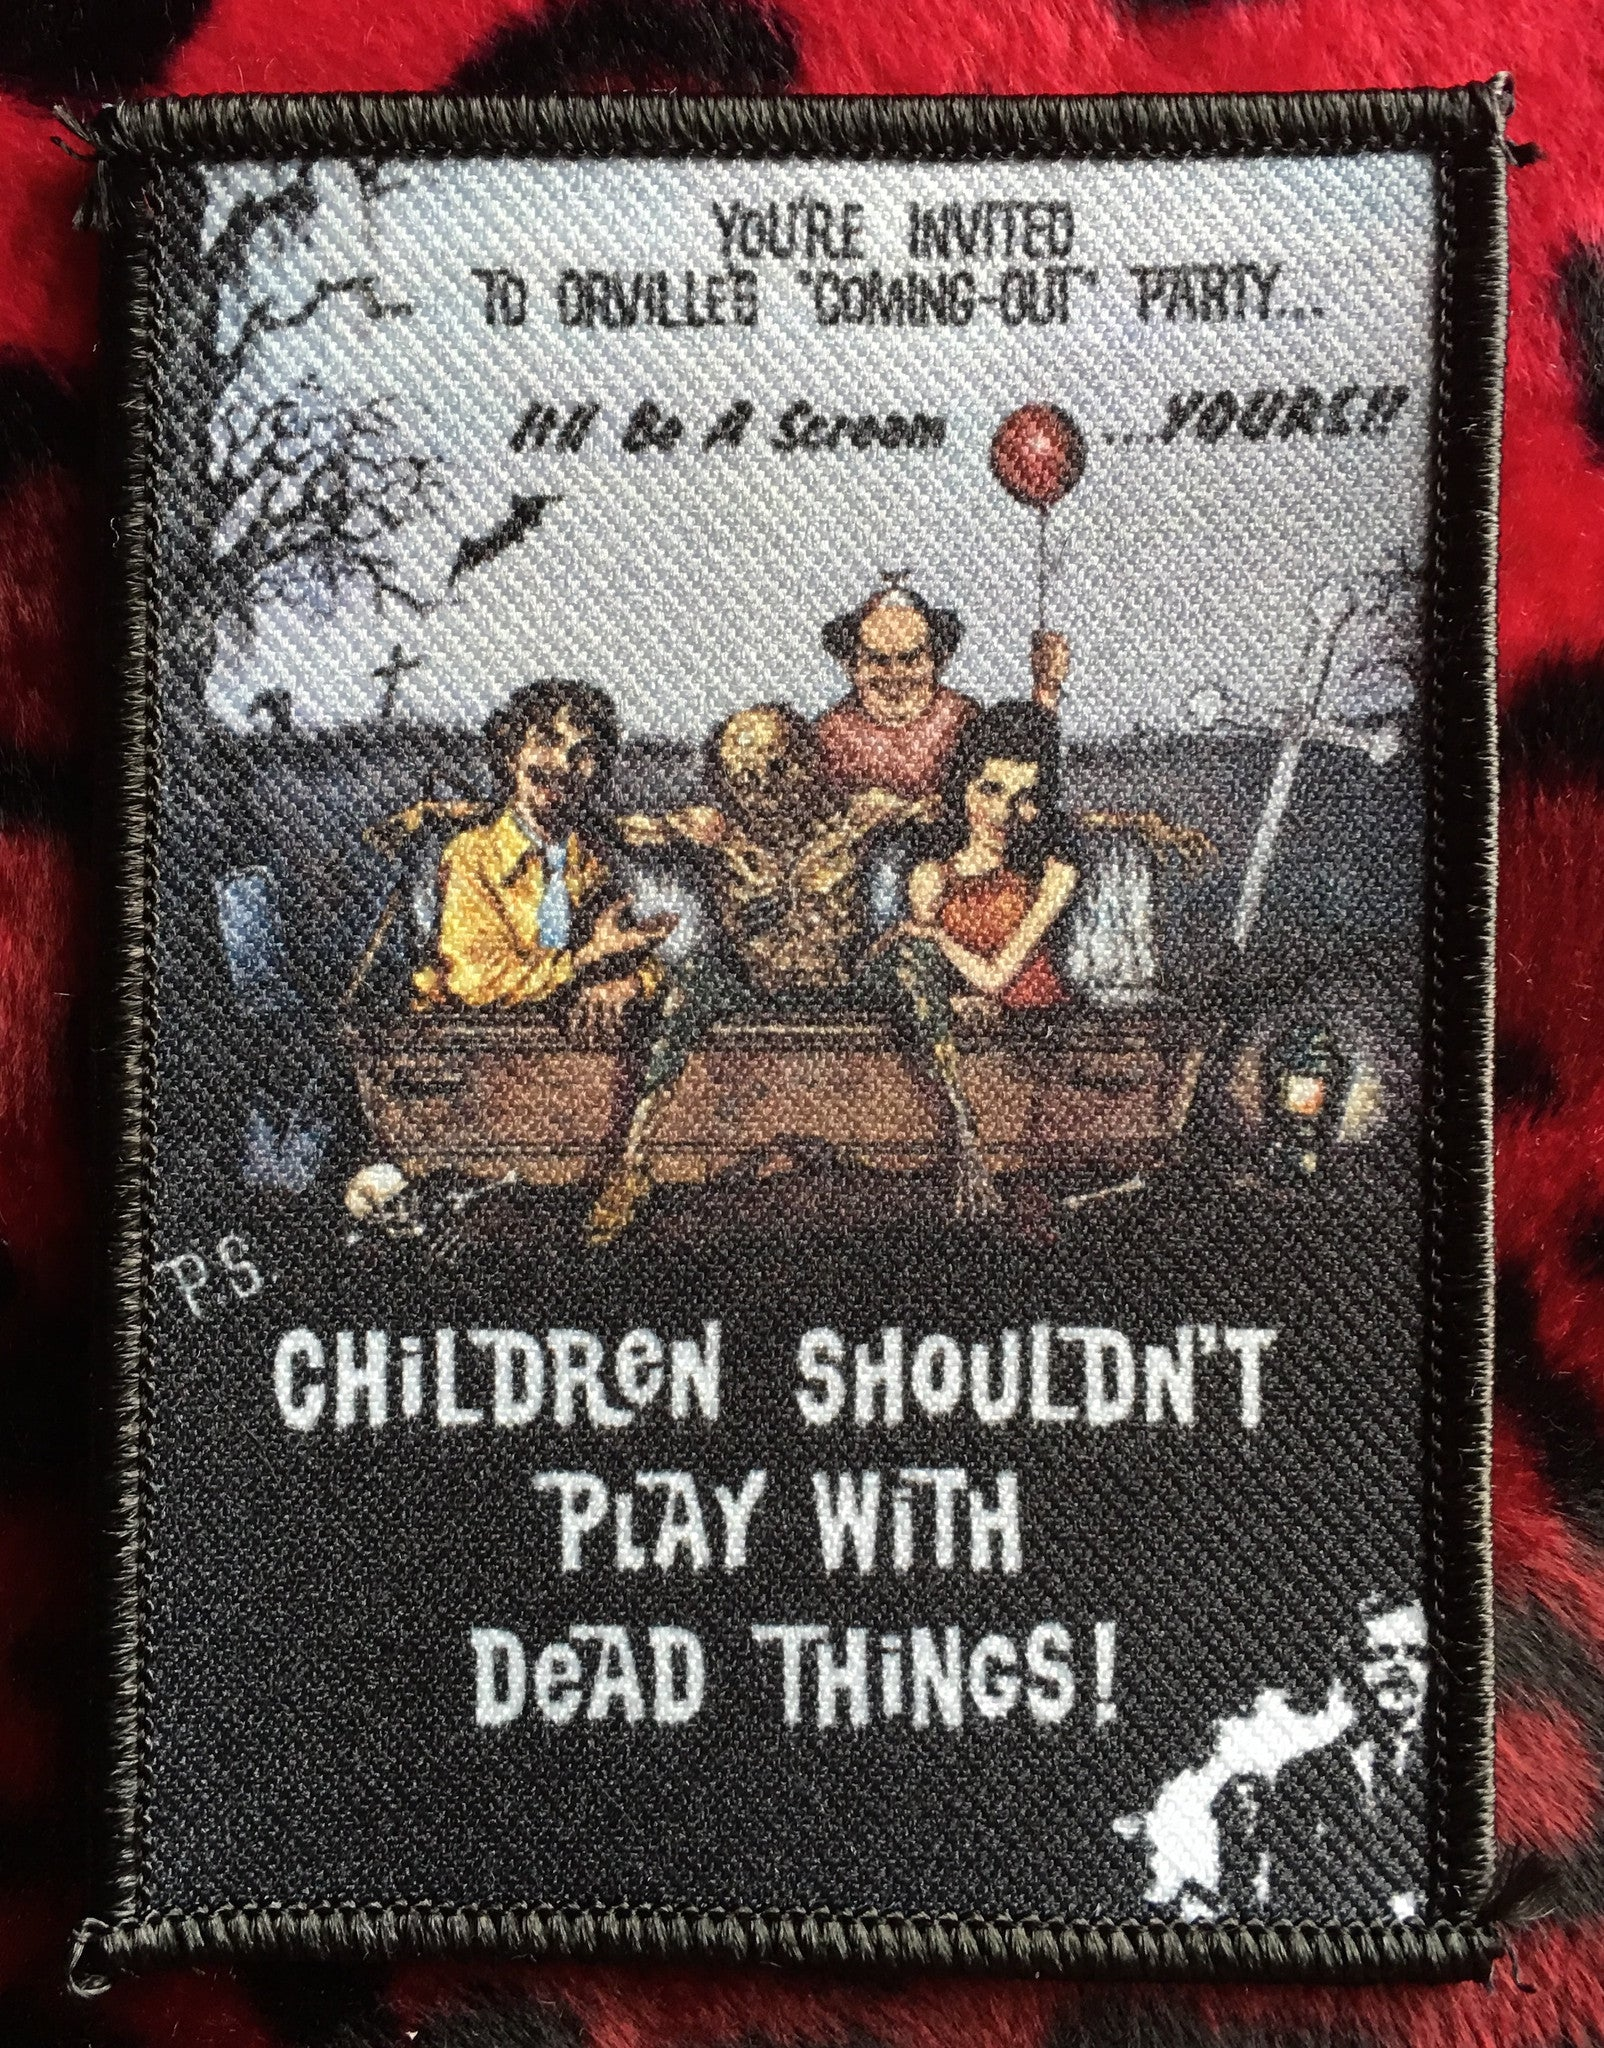 Children Shouldn't Play With Dead Things Patch